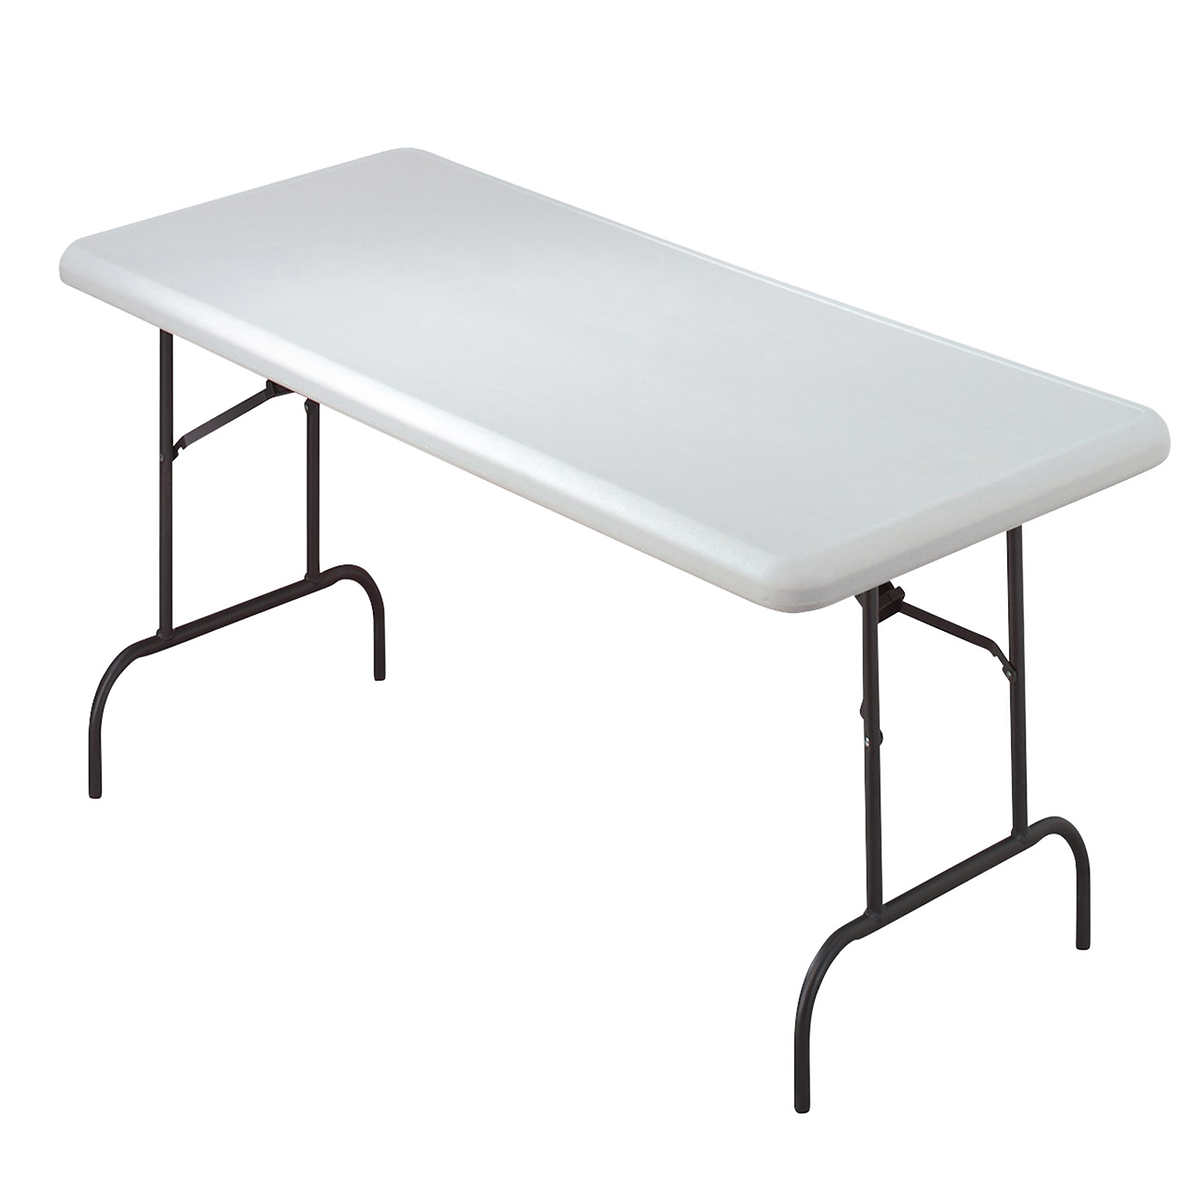 "Iceberg IndestrucTable TOO Folding Table 30"" x 60"" Platinum"